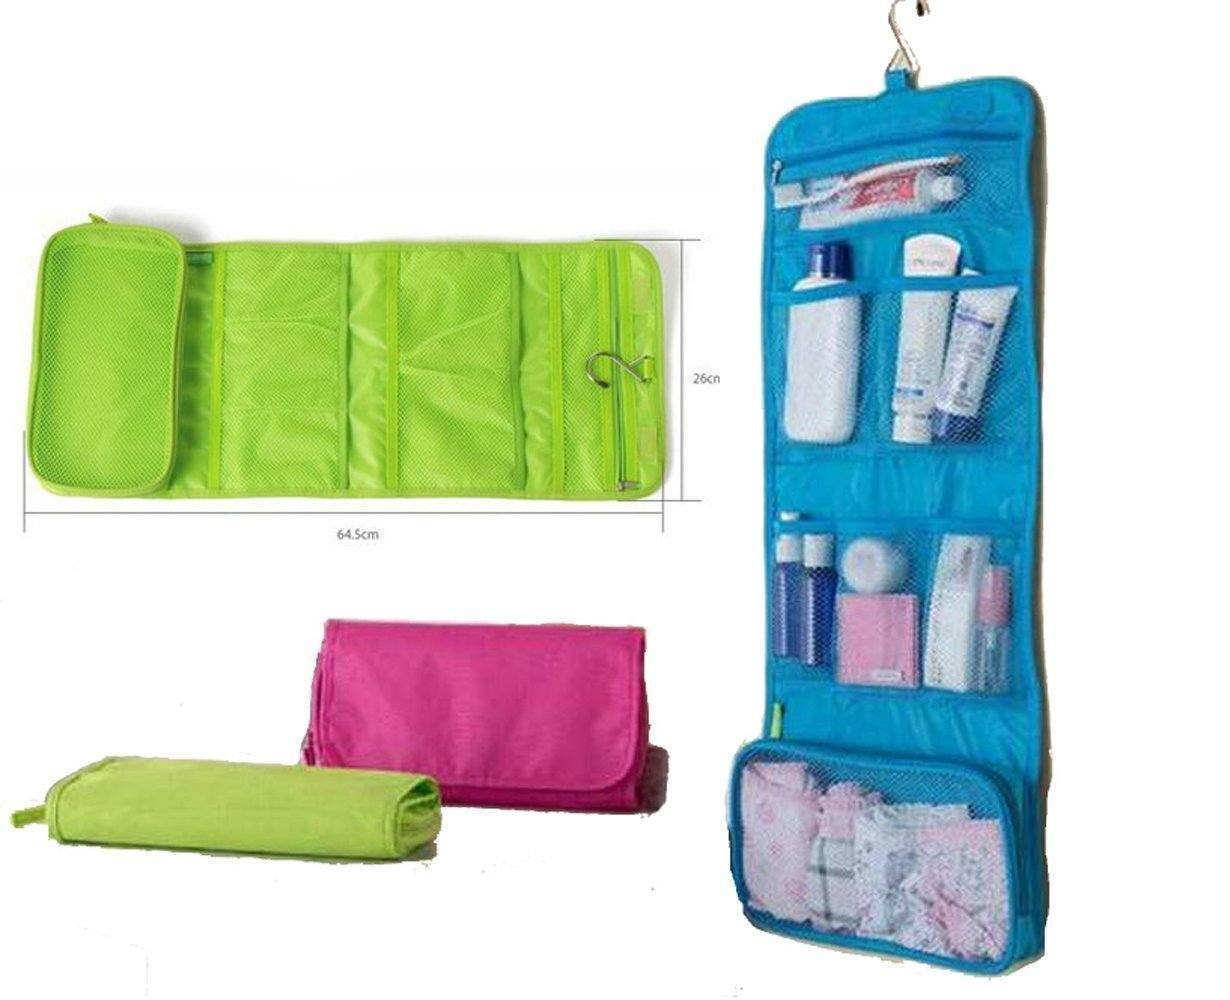 Organiser - Multiuse Stylish Attractive Hanging First Aid/Cosmetic/ Clothing/Make Up /Toiletry Bag Organiser